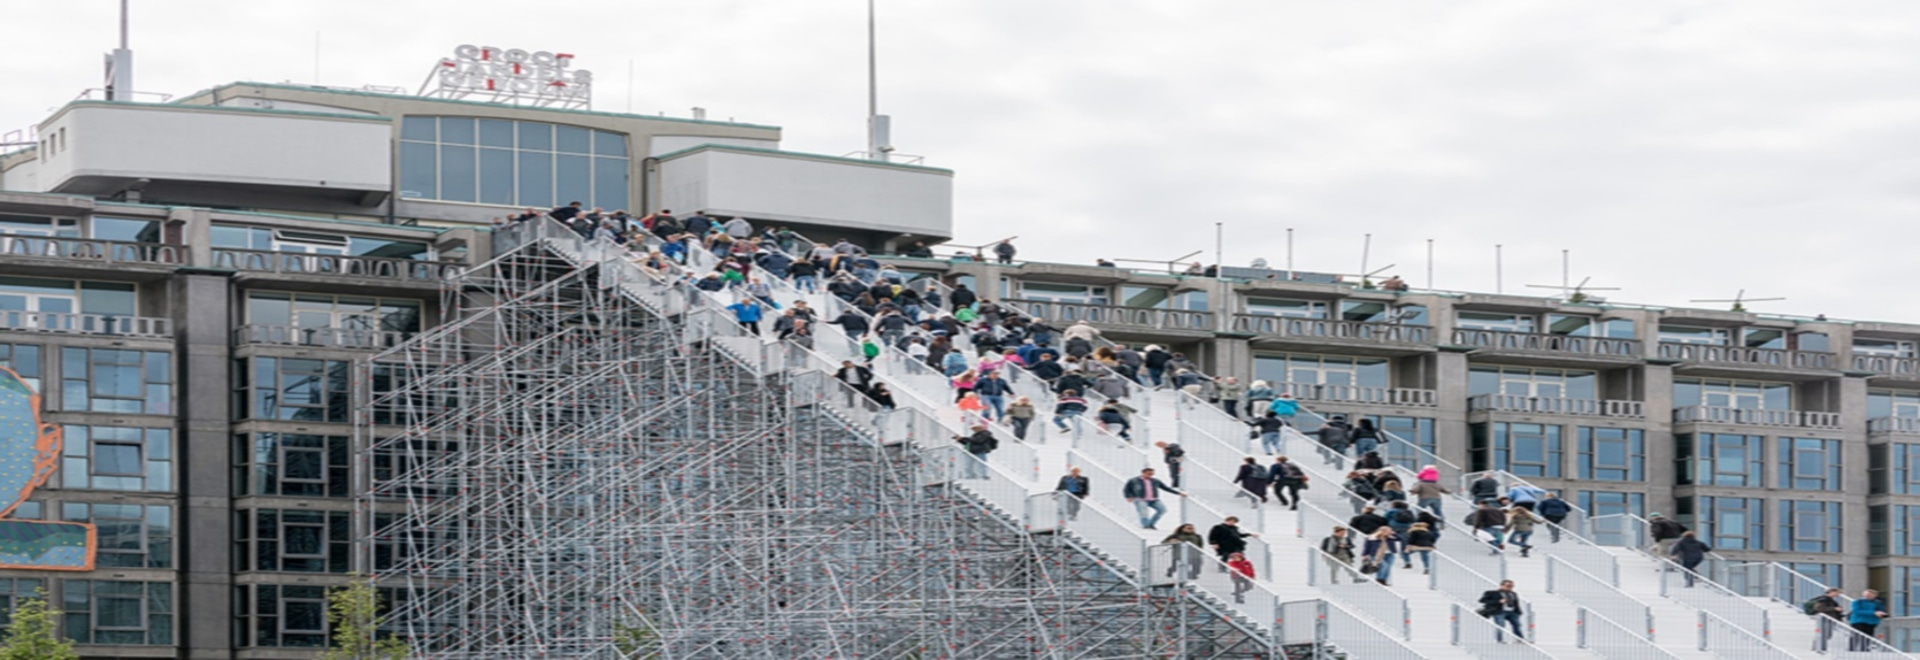 MVRDV's giant scaffold staircase in rotterdam opens to the public